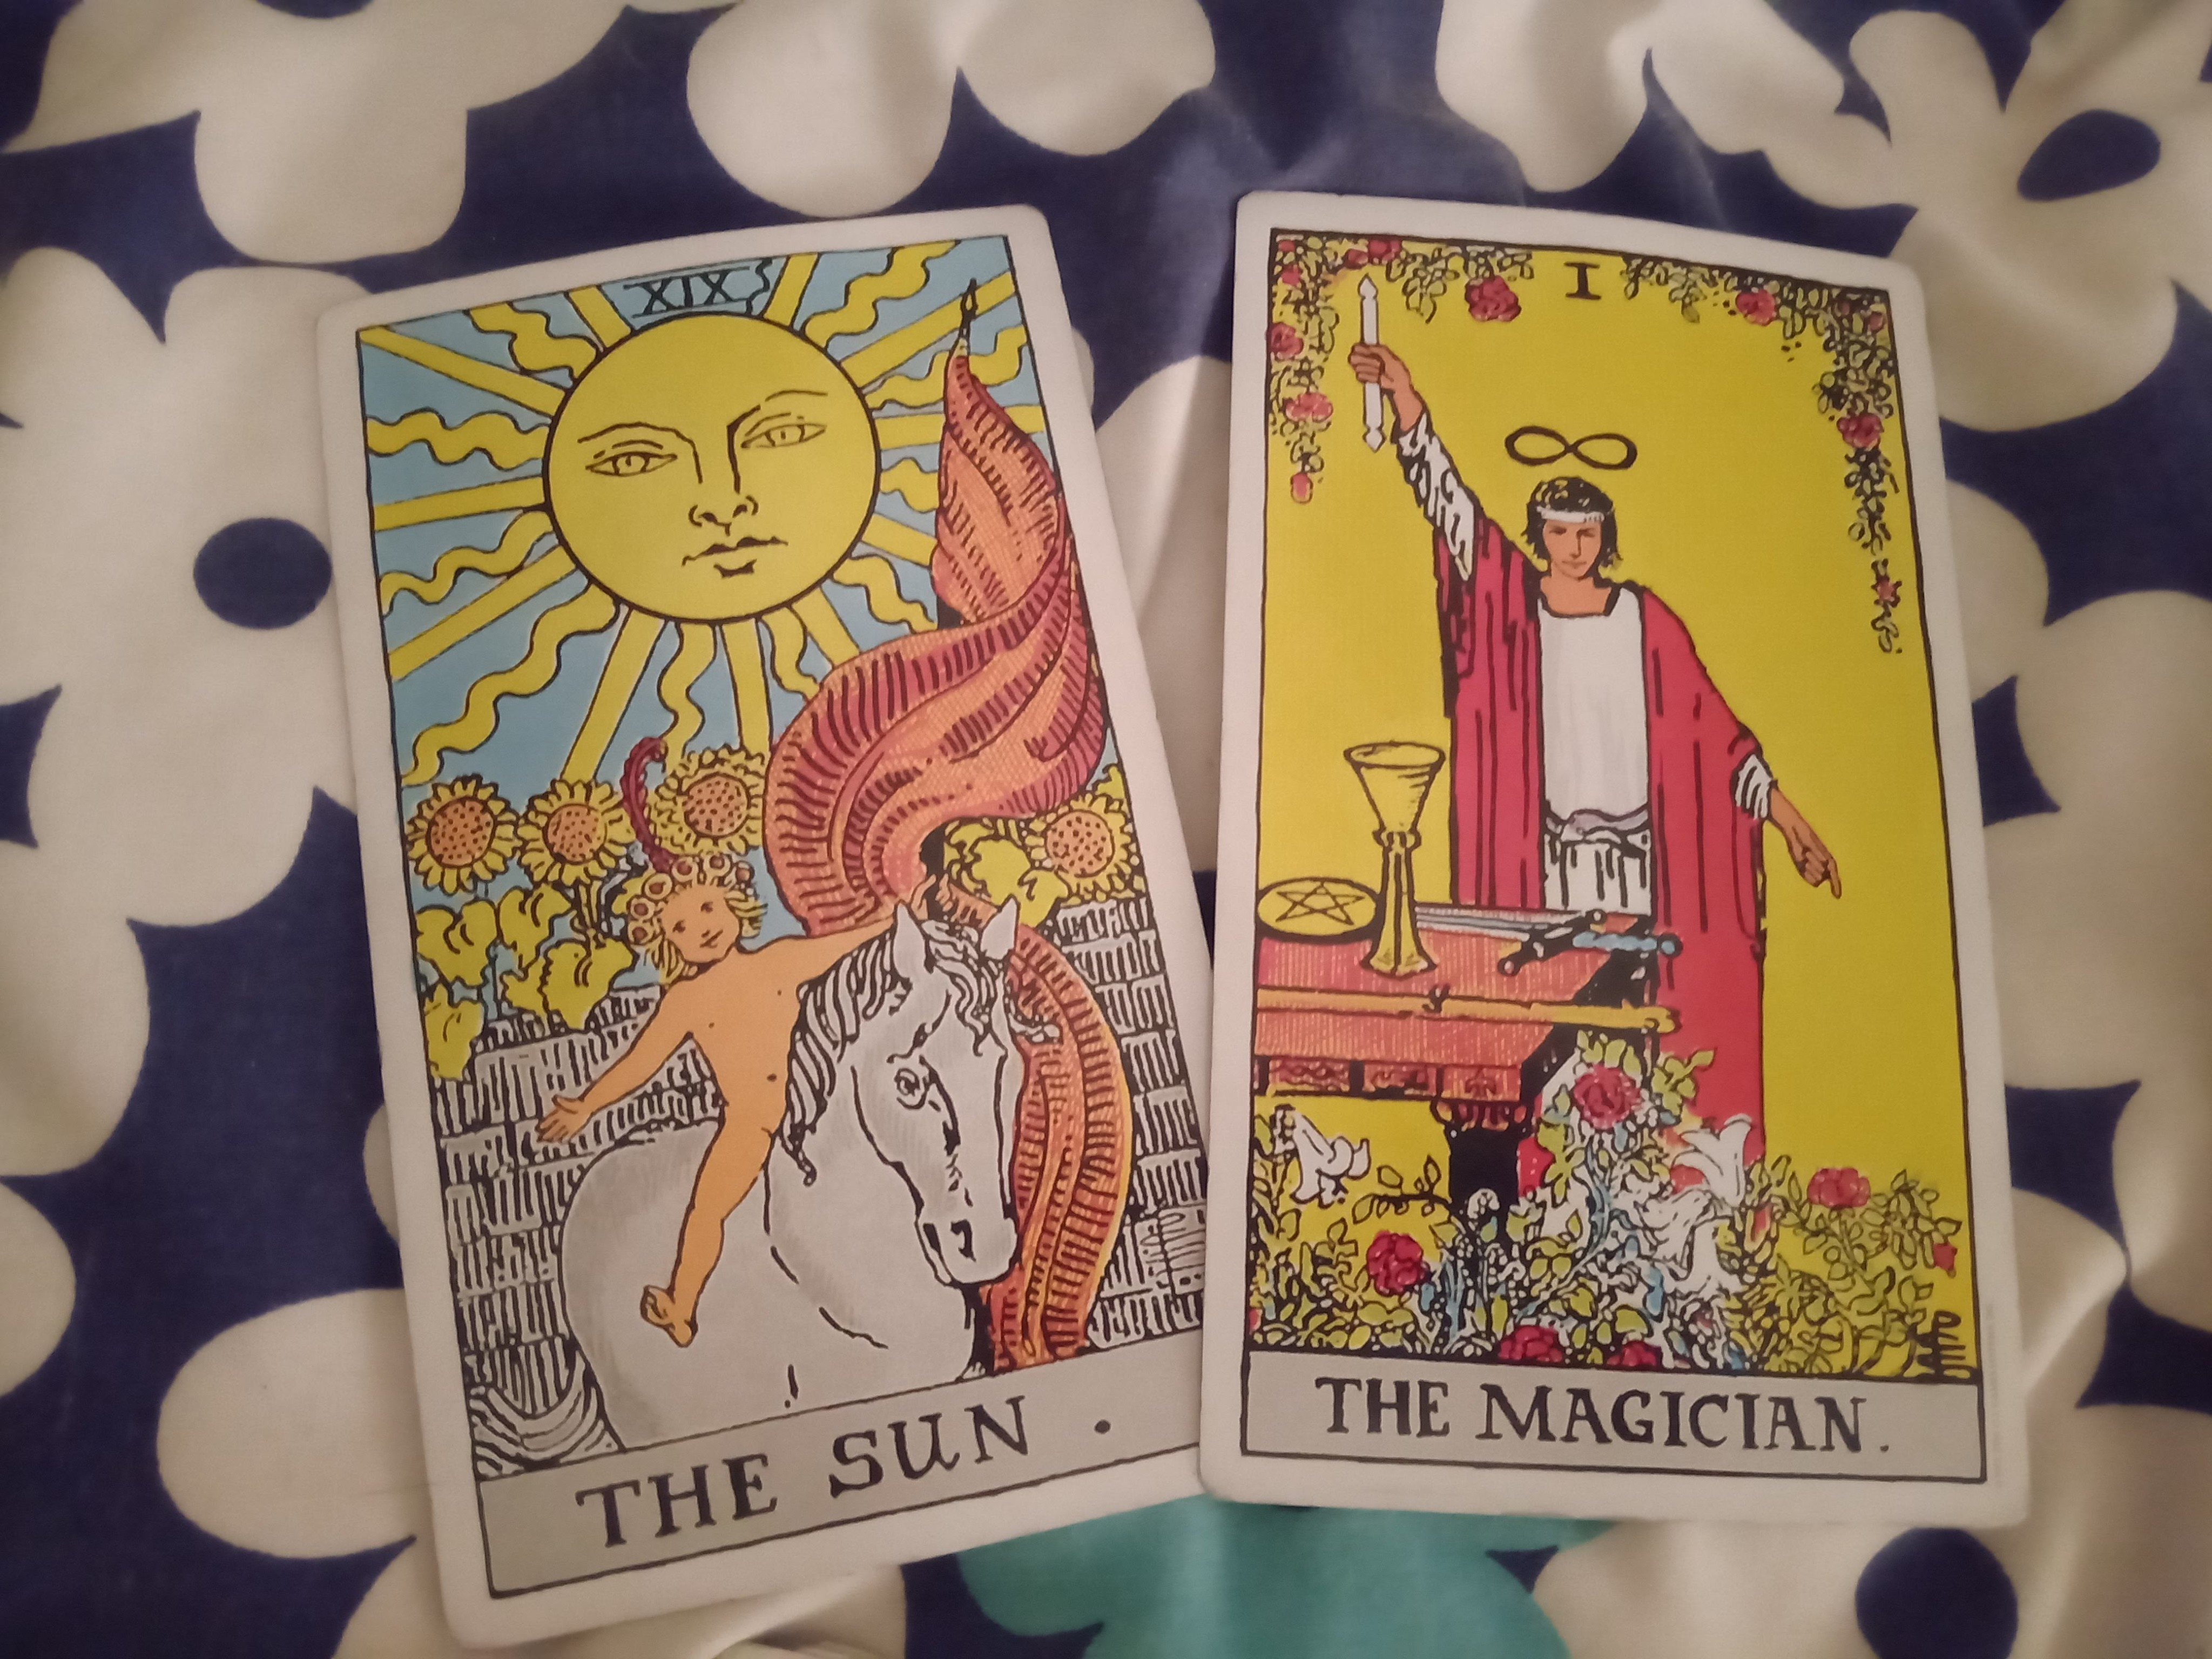 XIX The Sun + I The Magician from the RWS Deck